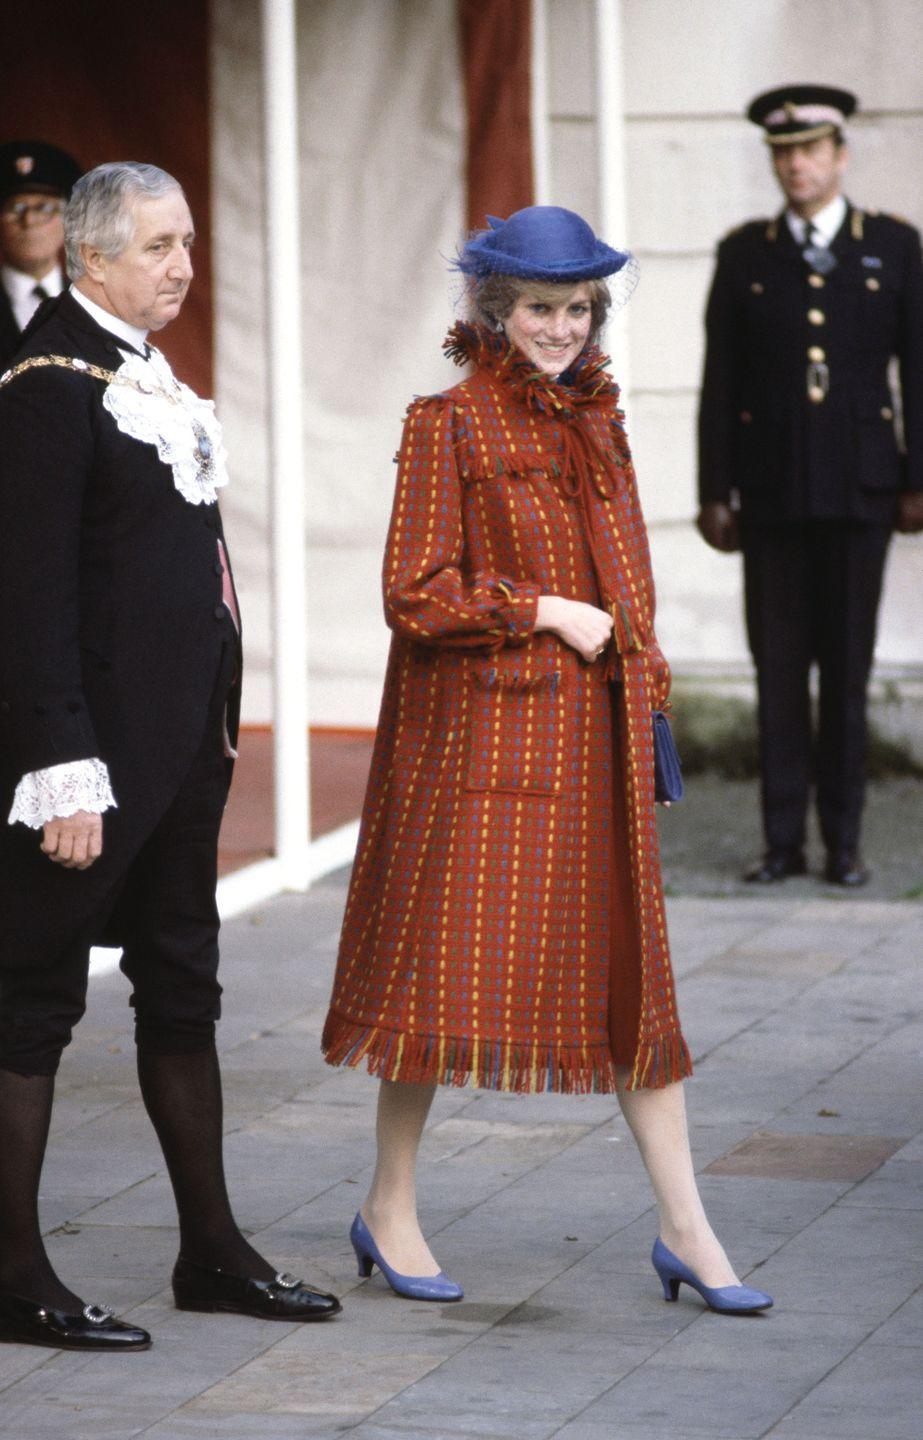 <p>In a fringe detailed coat, blue hat and matching shoes while visting the Guildhall in London after announcing her first pregnancy. </p>